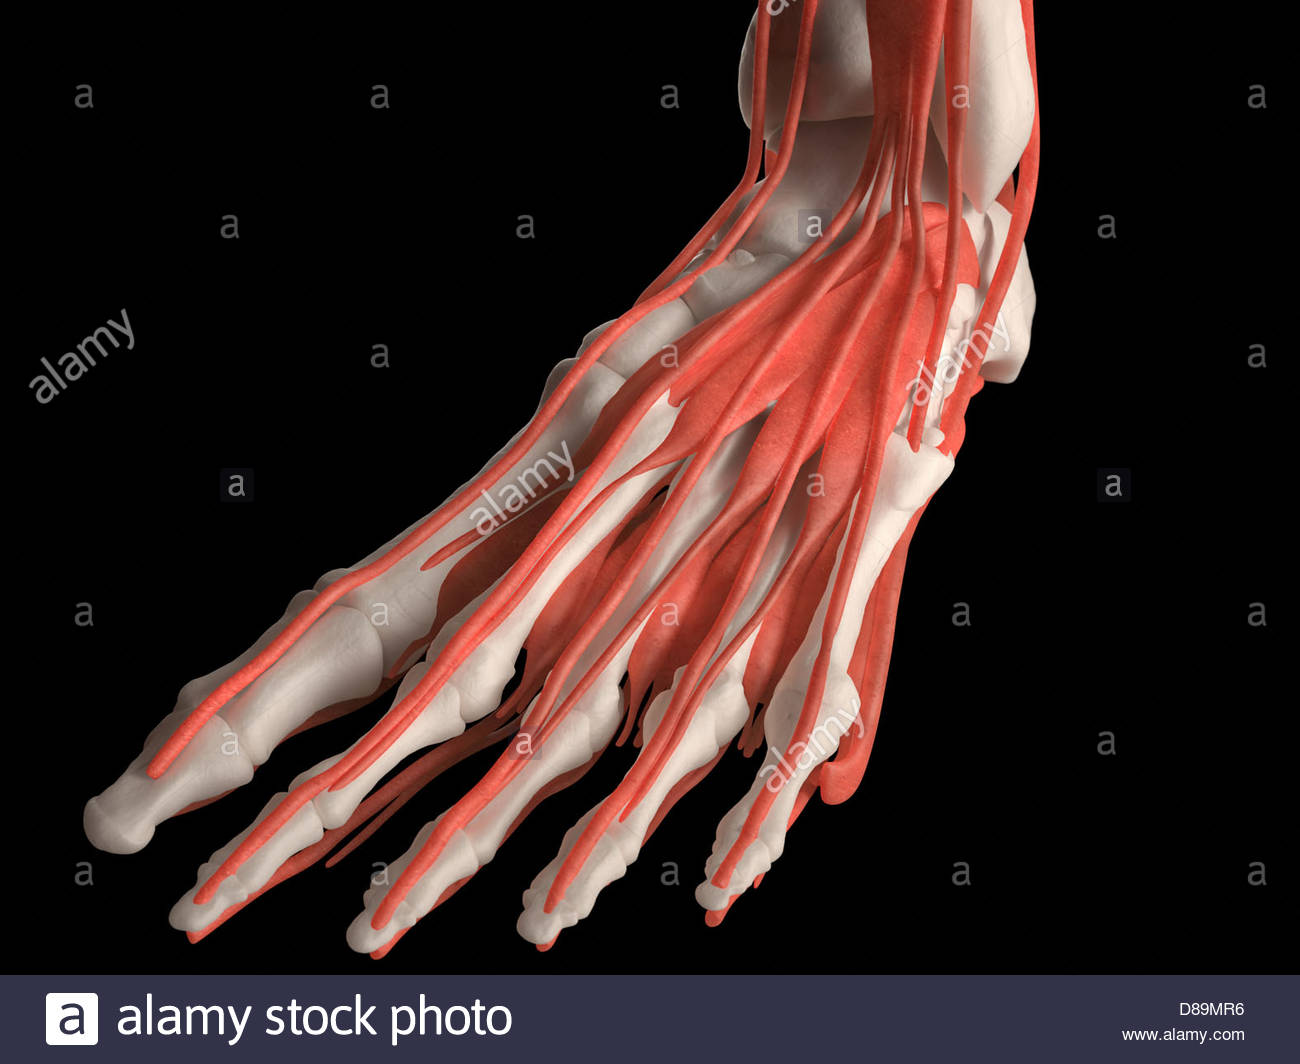 Digital medical illustration: Top view of human foot (skeleton with ...